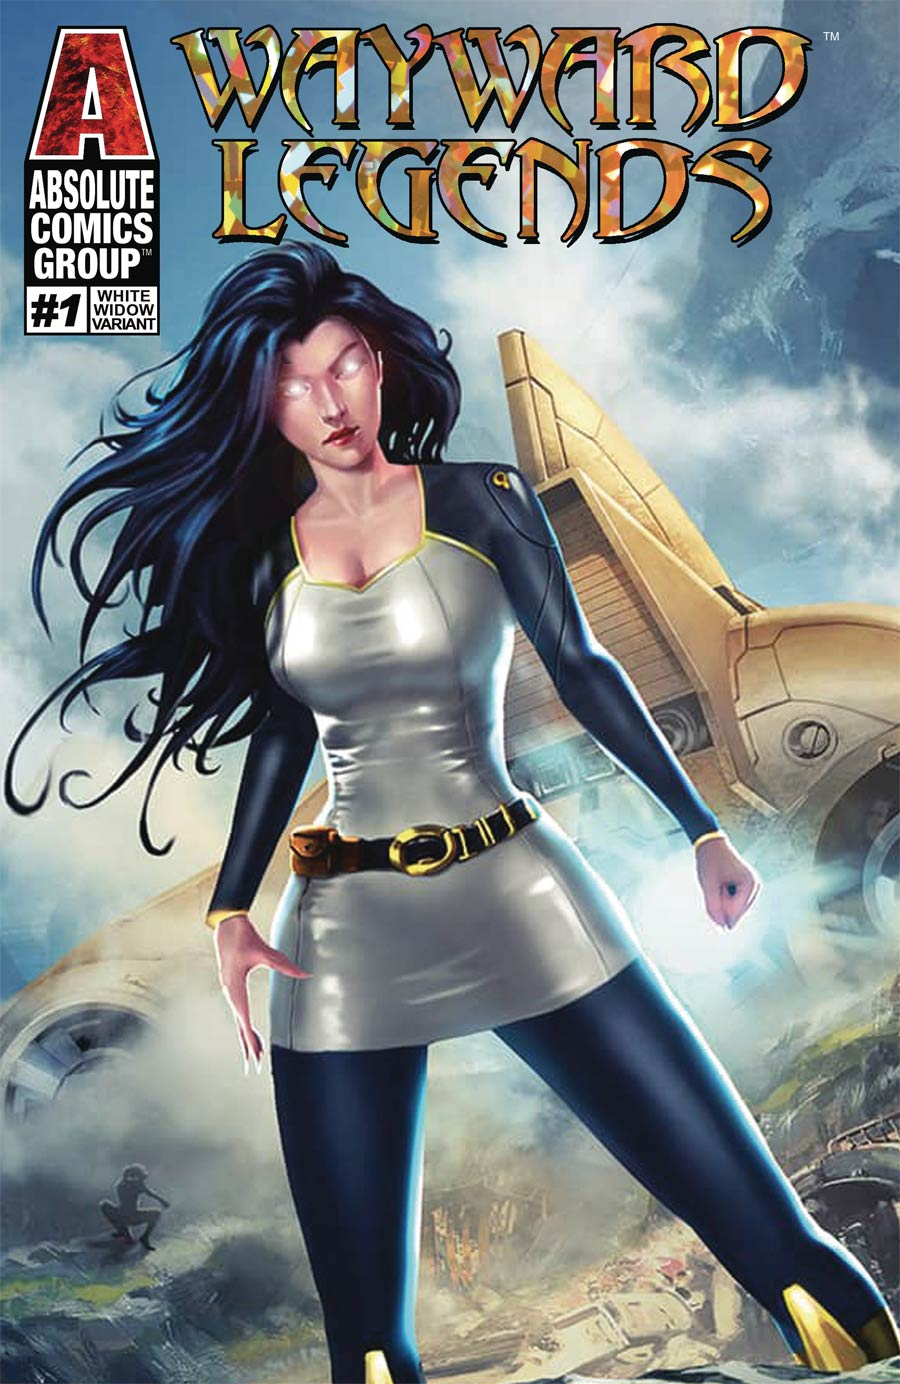 Wayward Legends #1 Cover C Variant White Widow Cover